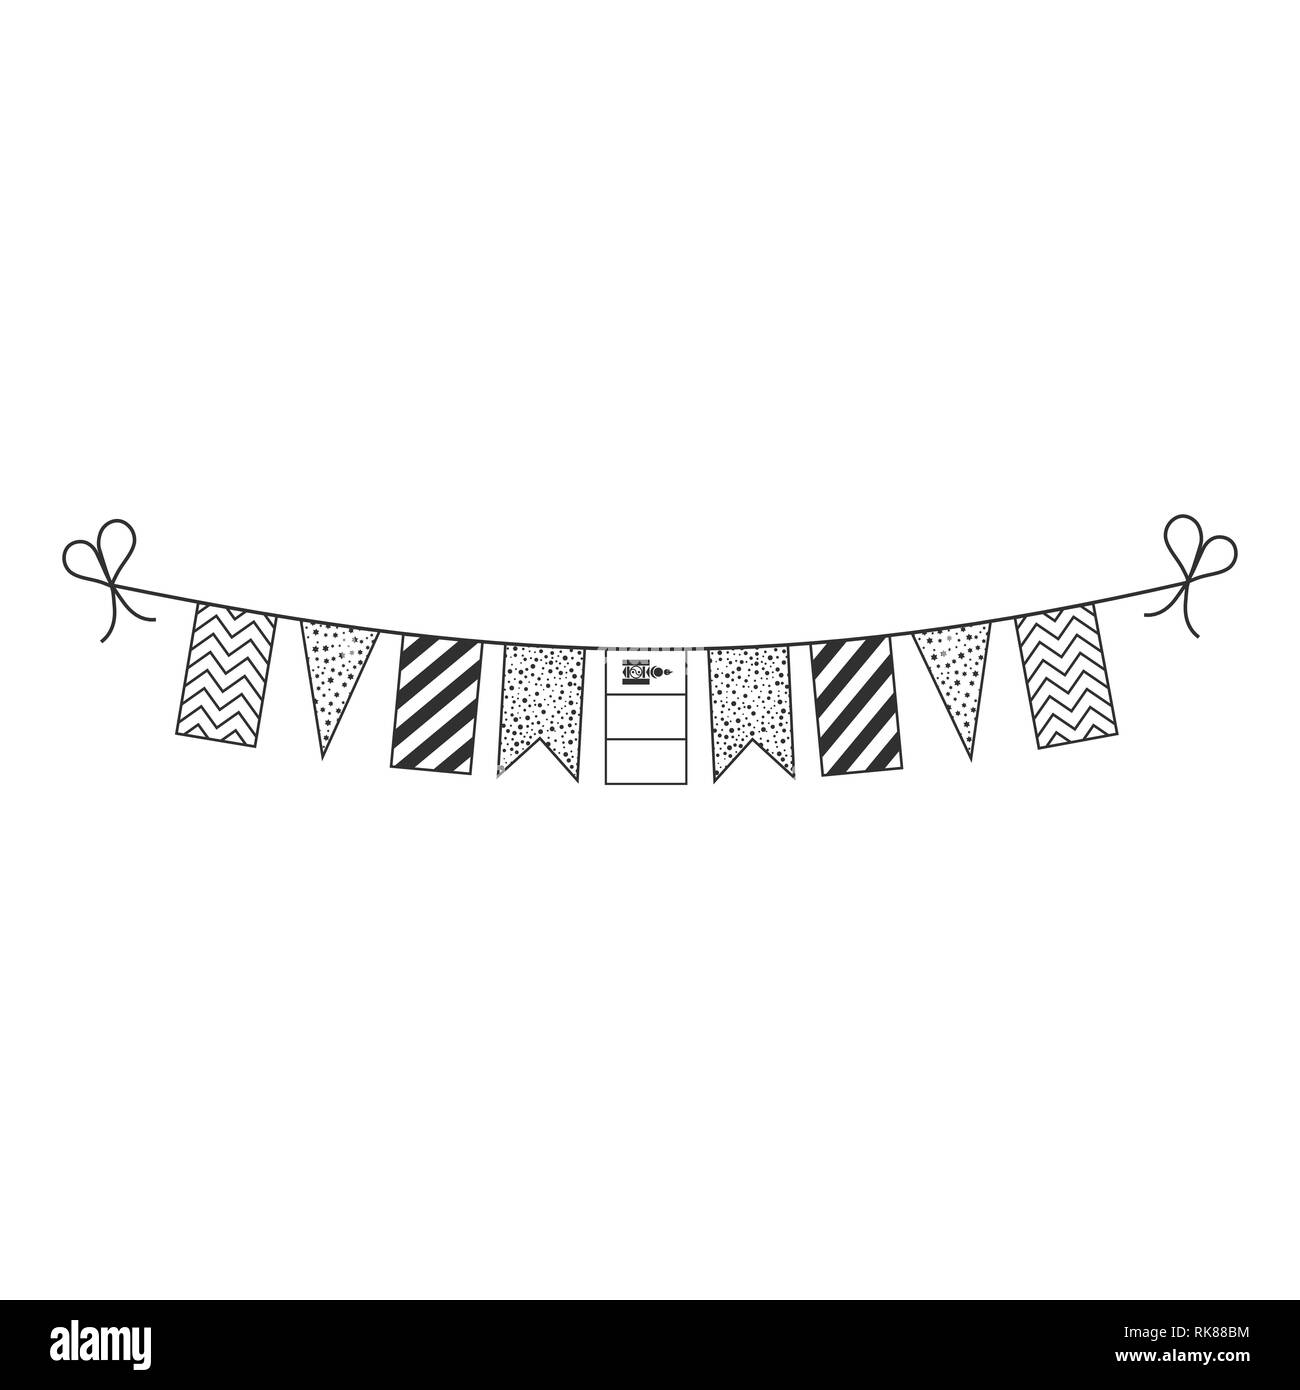 Decorations bunting flags for Mongolia national day holiday in black outline flat design. Independence day or National day holiday concept. - Stock Vector